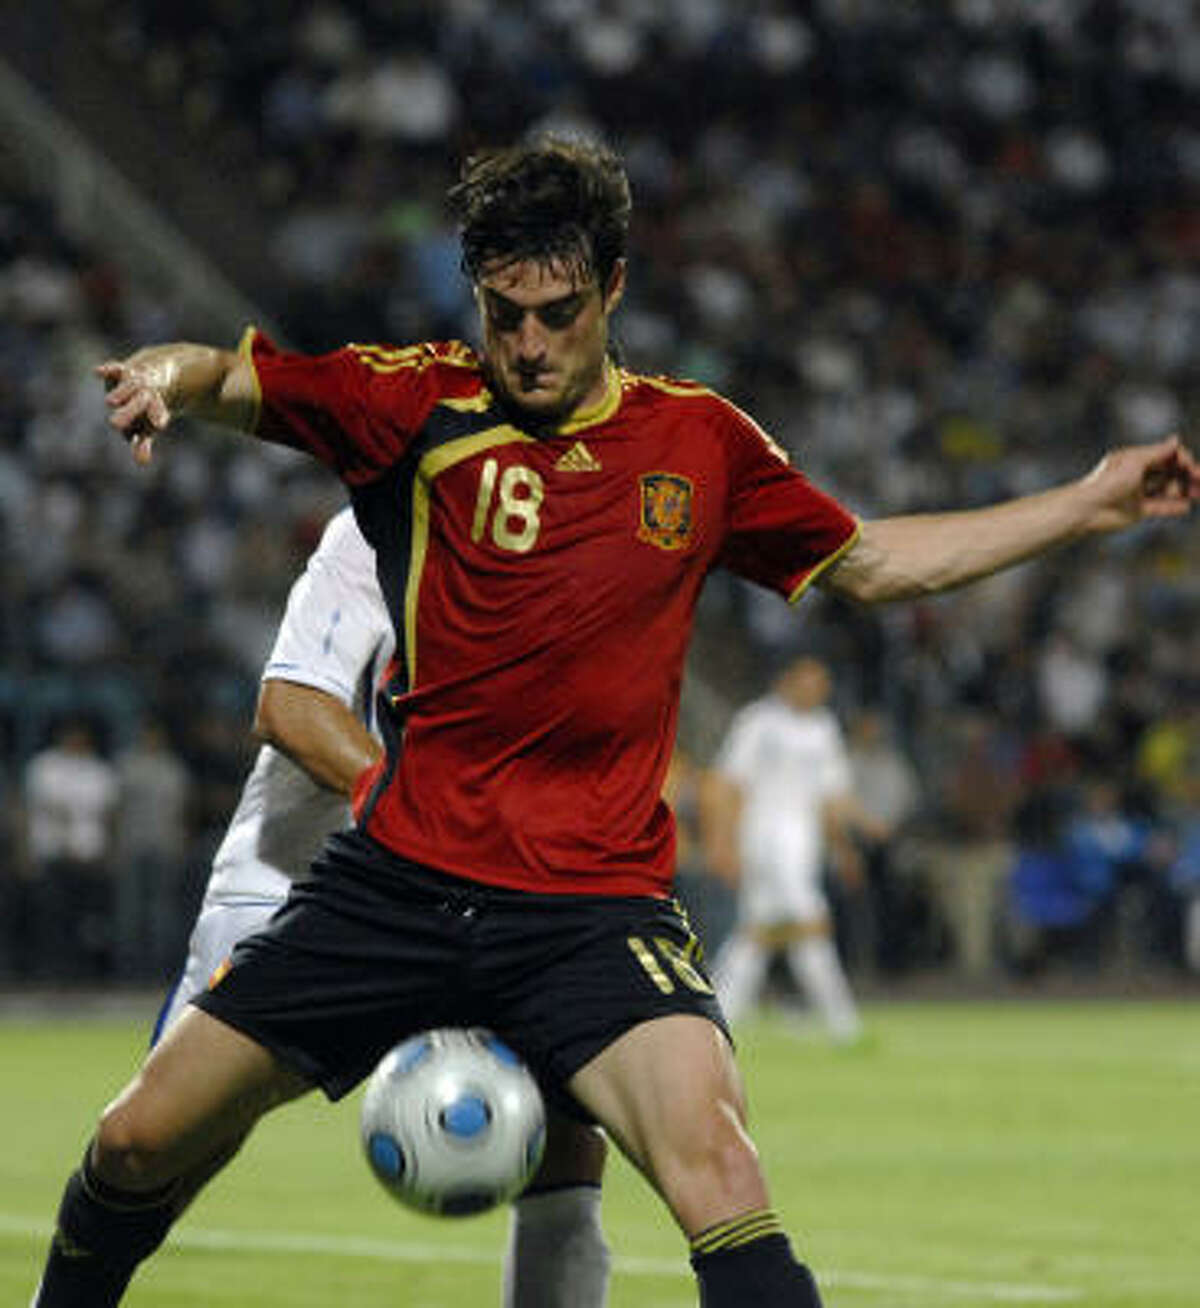 1. SPAIN Albert Riera and Spain beat Azerbaijan 6-0 in a friendly on Tuesday, June 9, and maintain a stranglehold on the top spot.